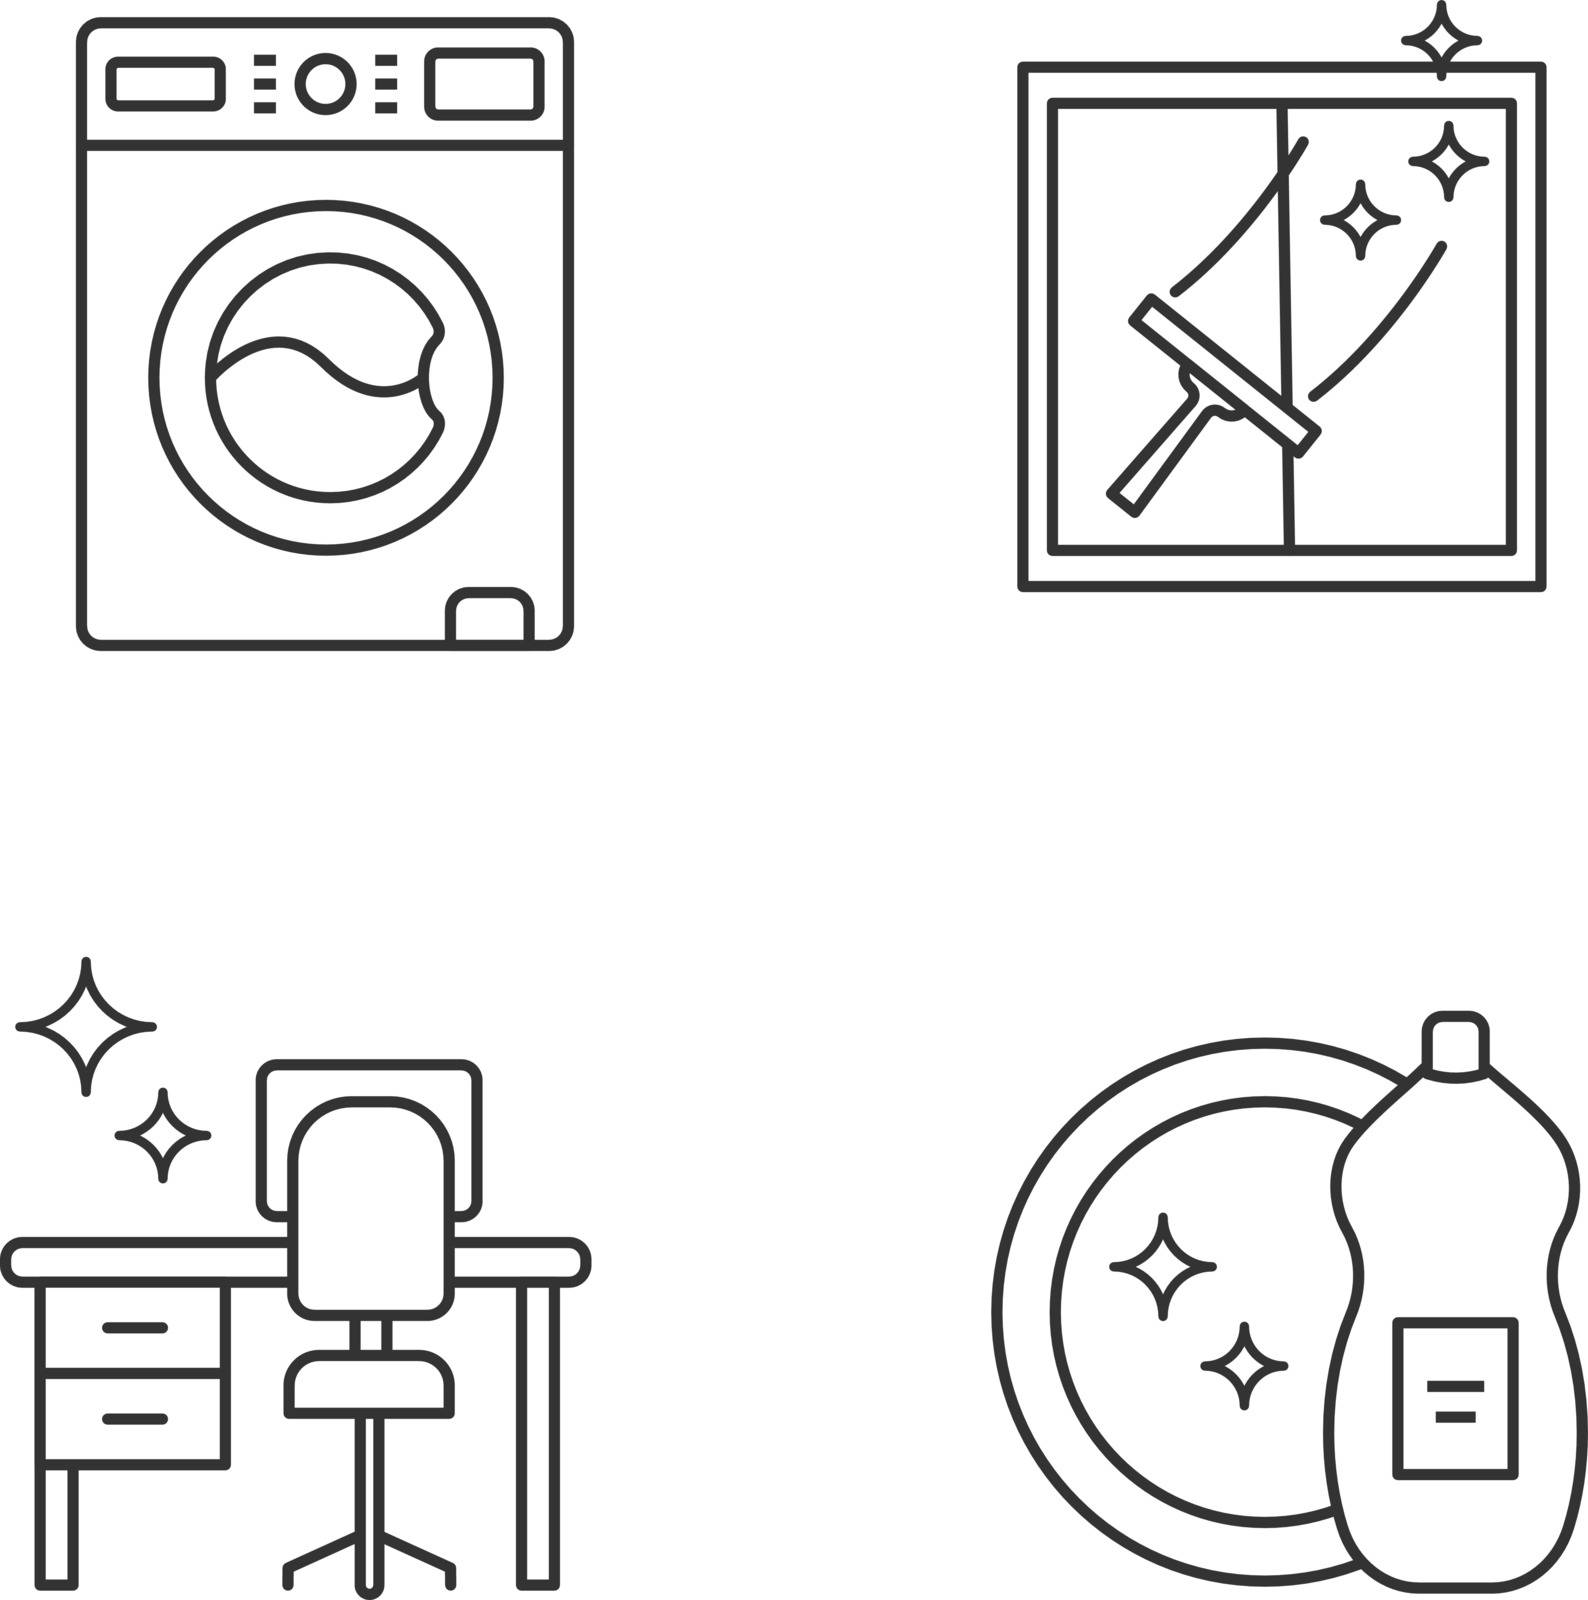 Cleaning service linear icons set. Washing machine, window cleaning, tidy table, dishwashing liquid. Thin line contour symbols. Isolated vector outline illustrations. Editable stroke